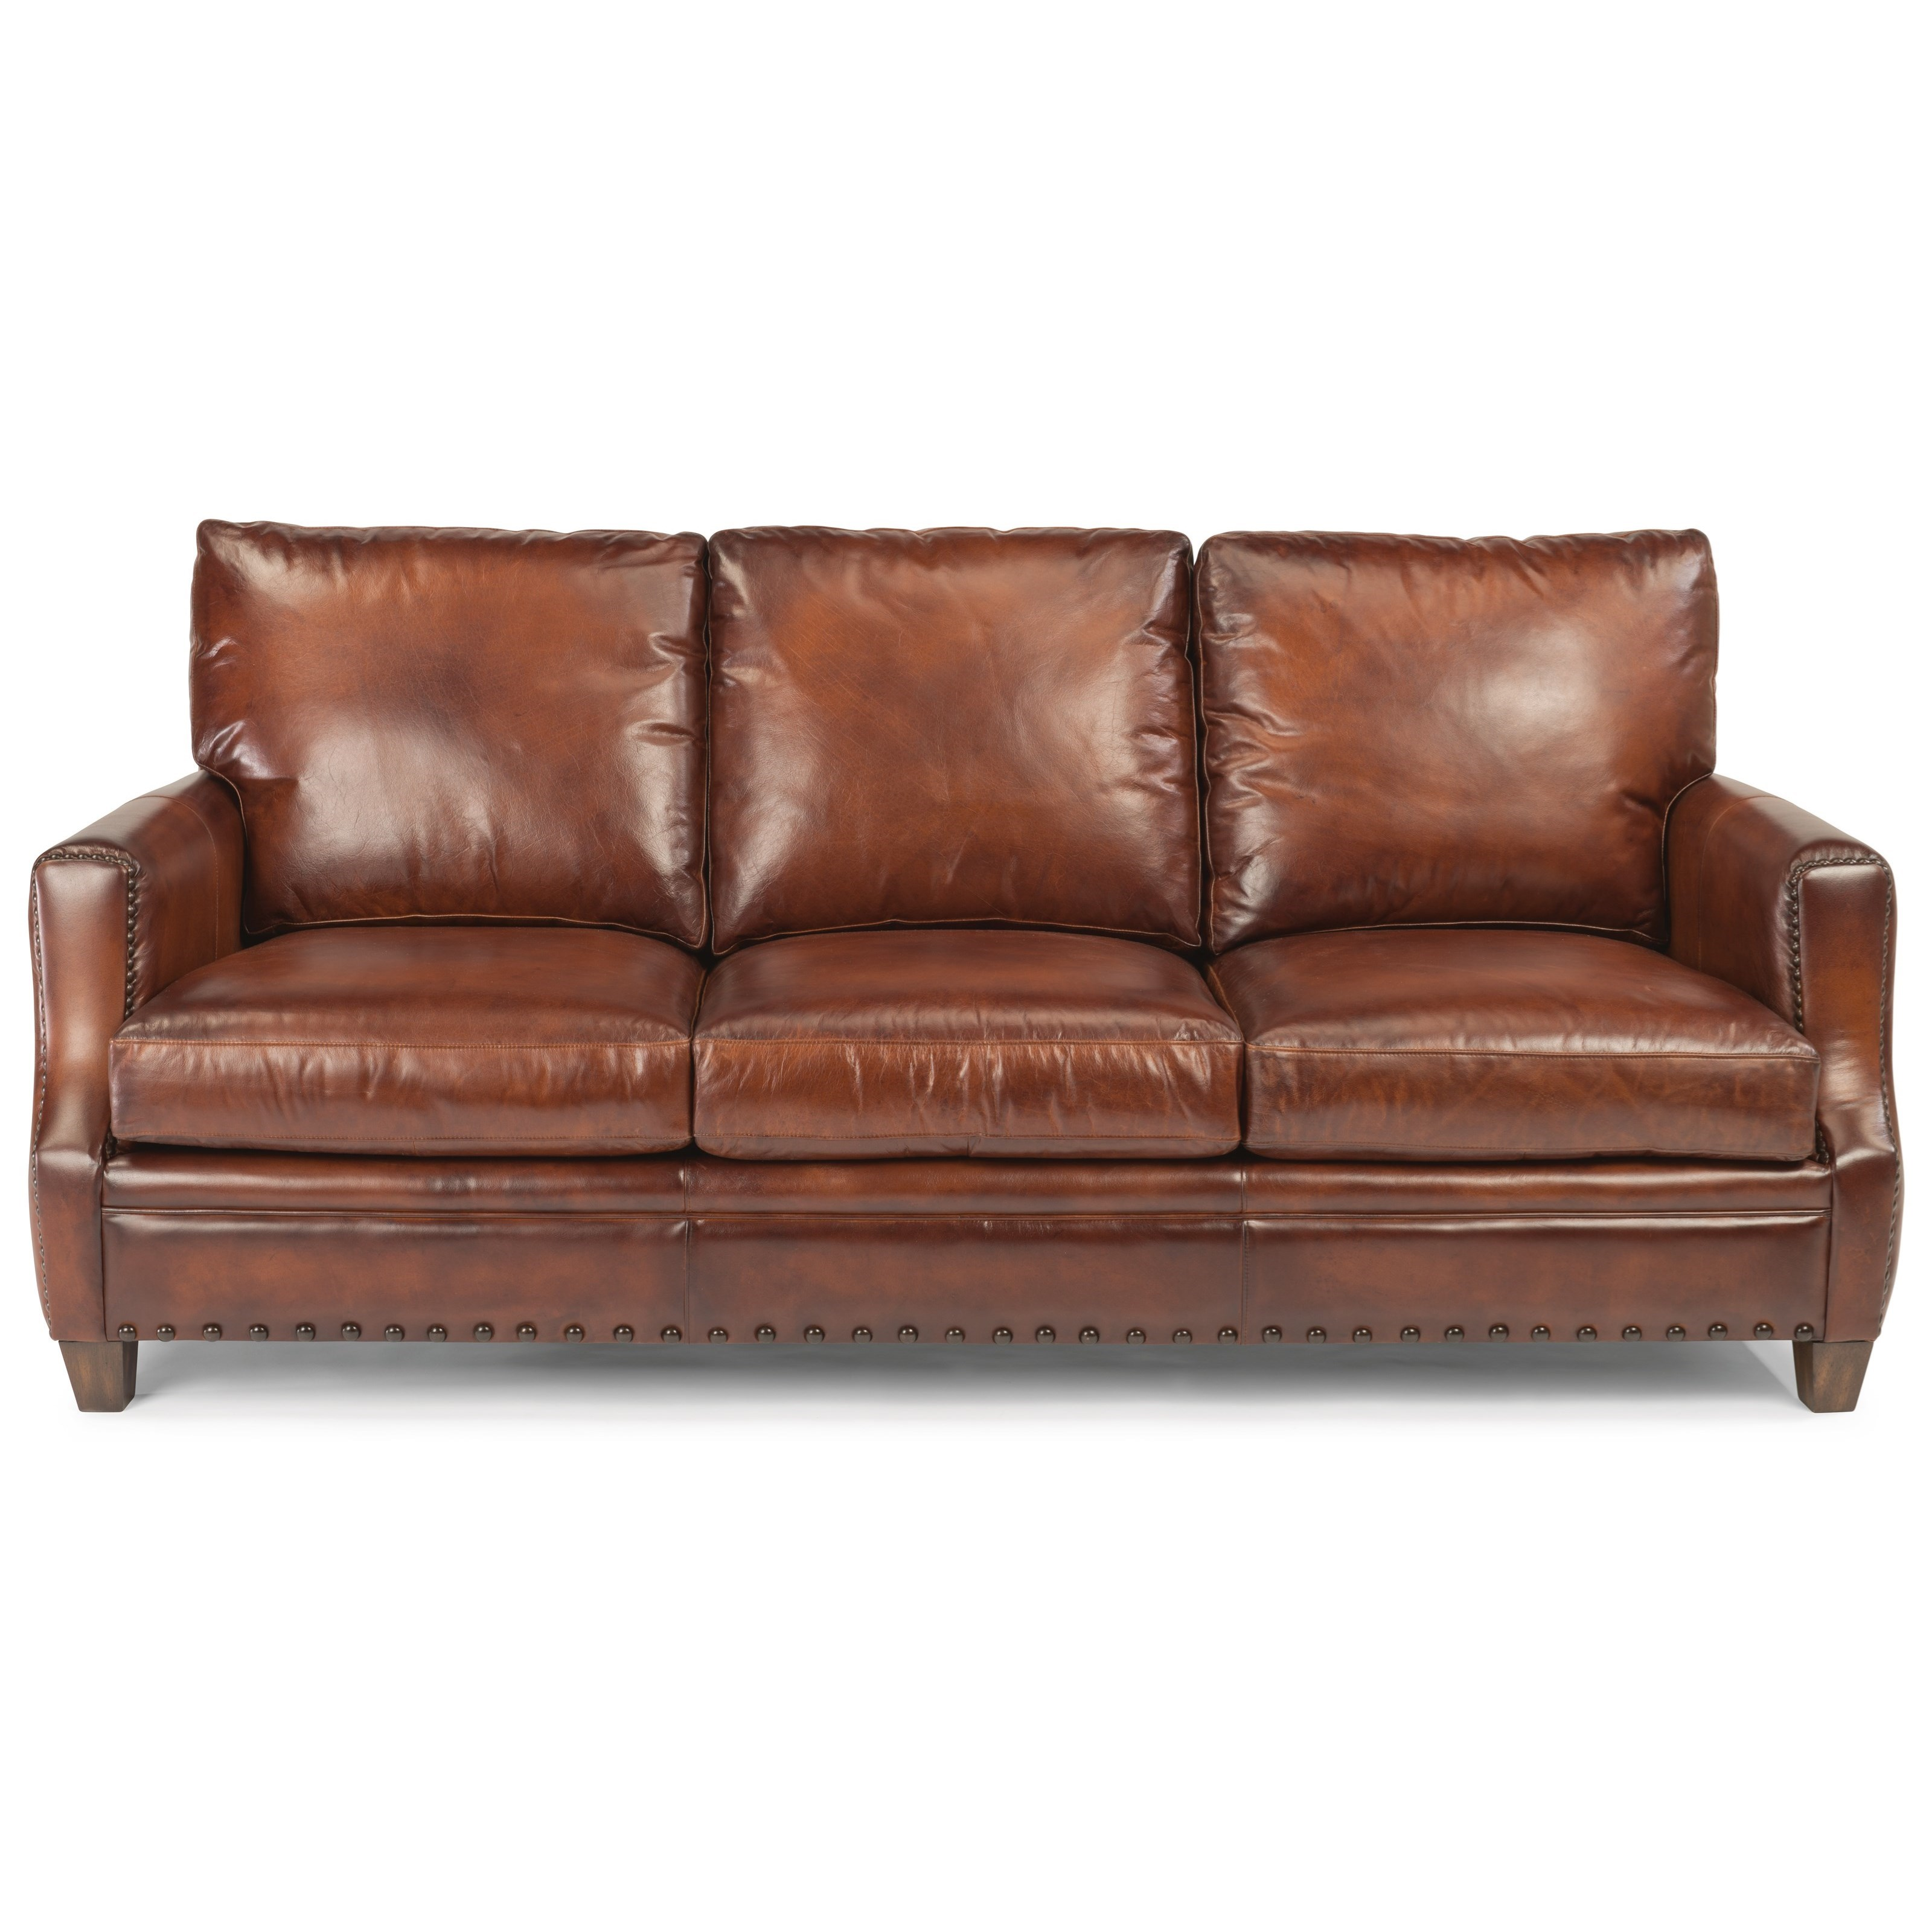 Laudes Maxfield Rustic Leather Sofa With Nailhead Trim By Flexsteel At Furniture And Liancemart